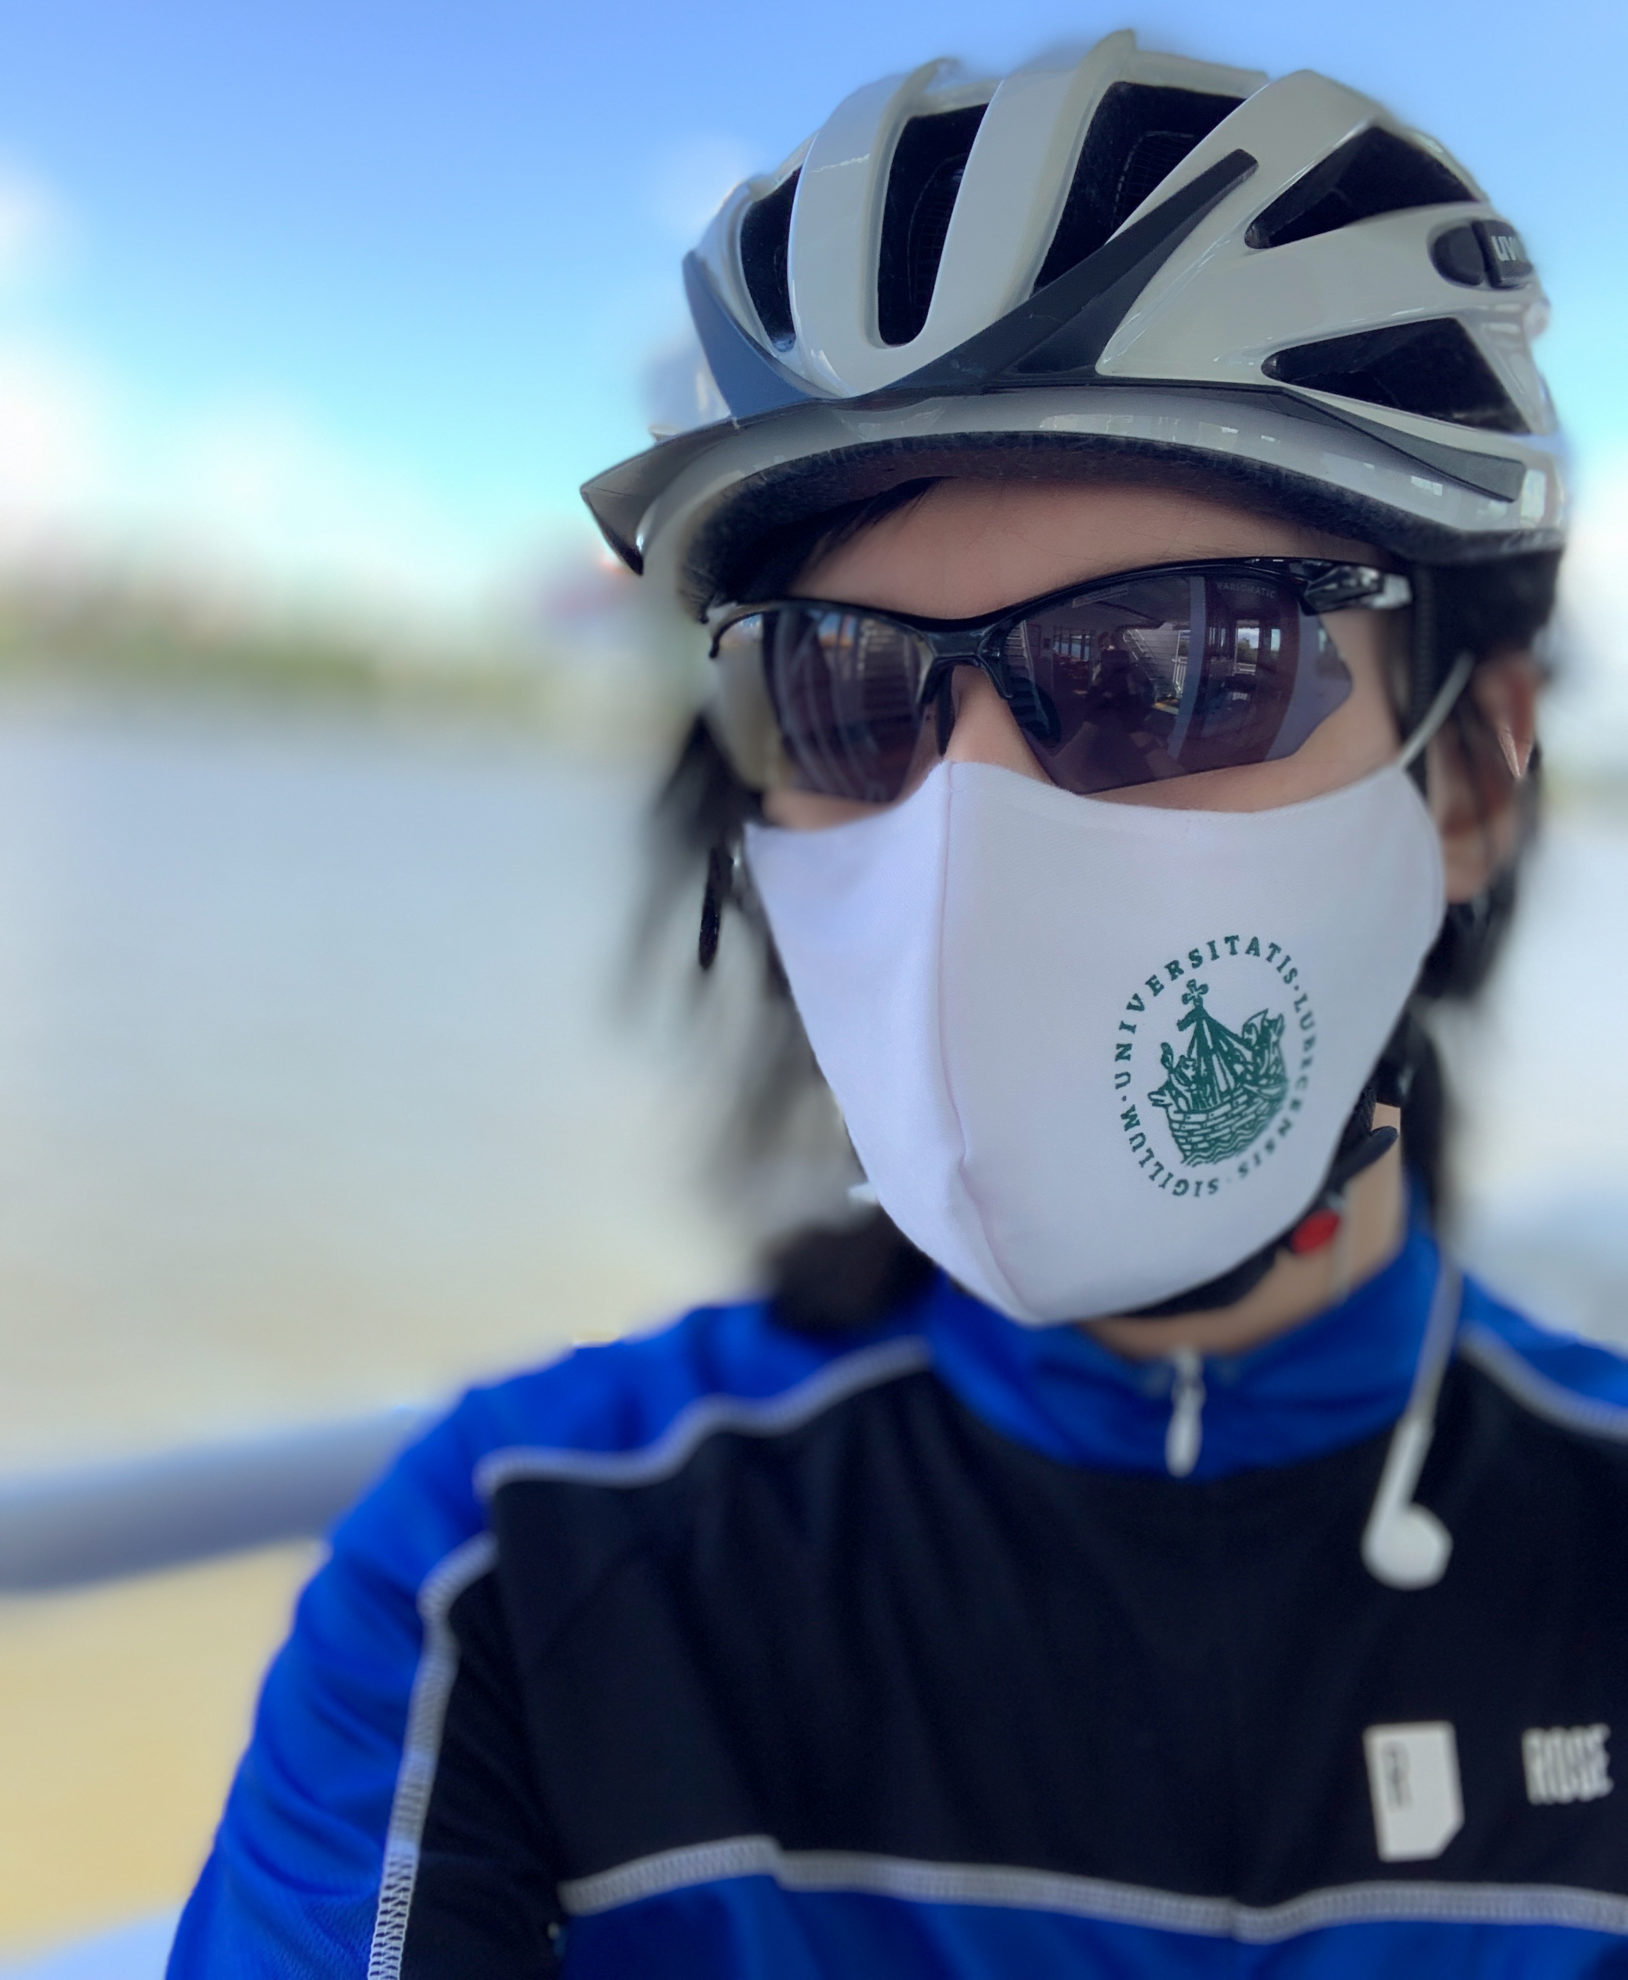 The Masked Cyclist